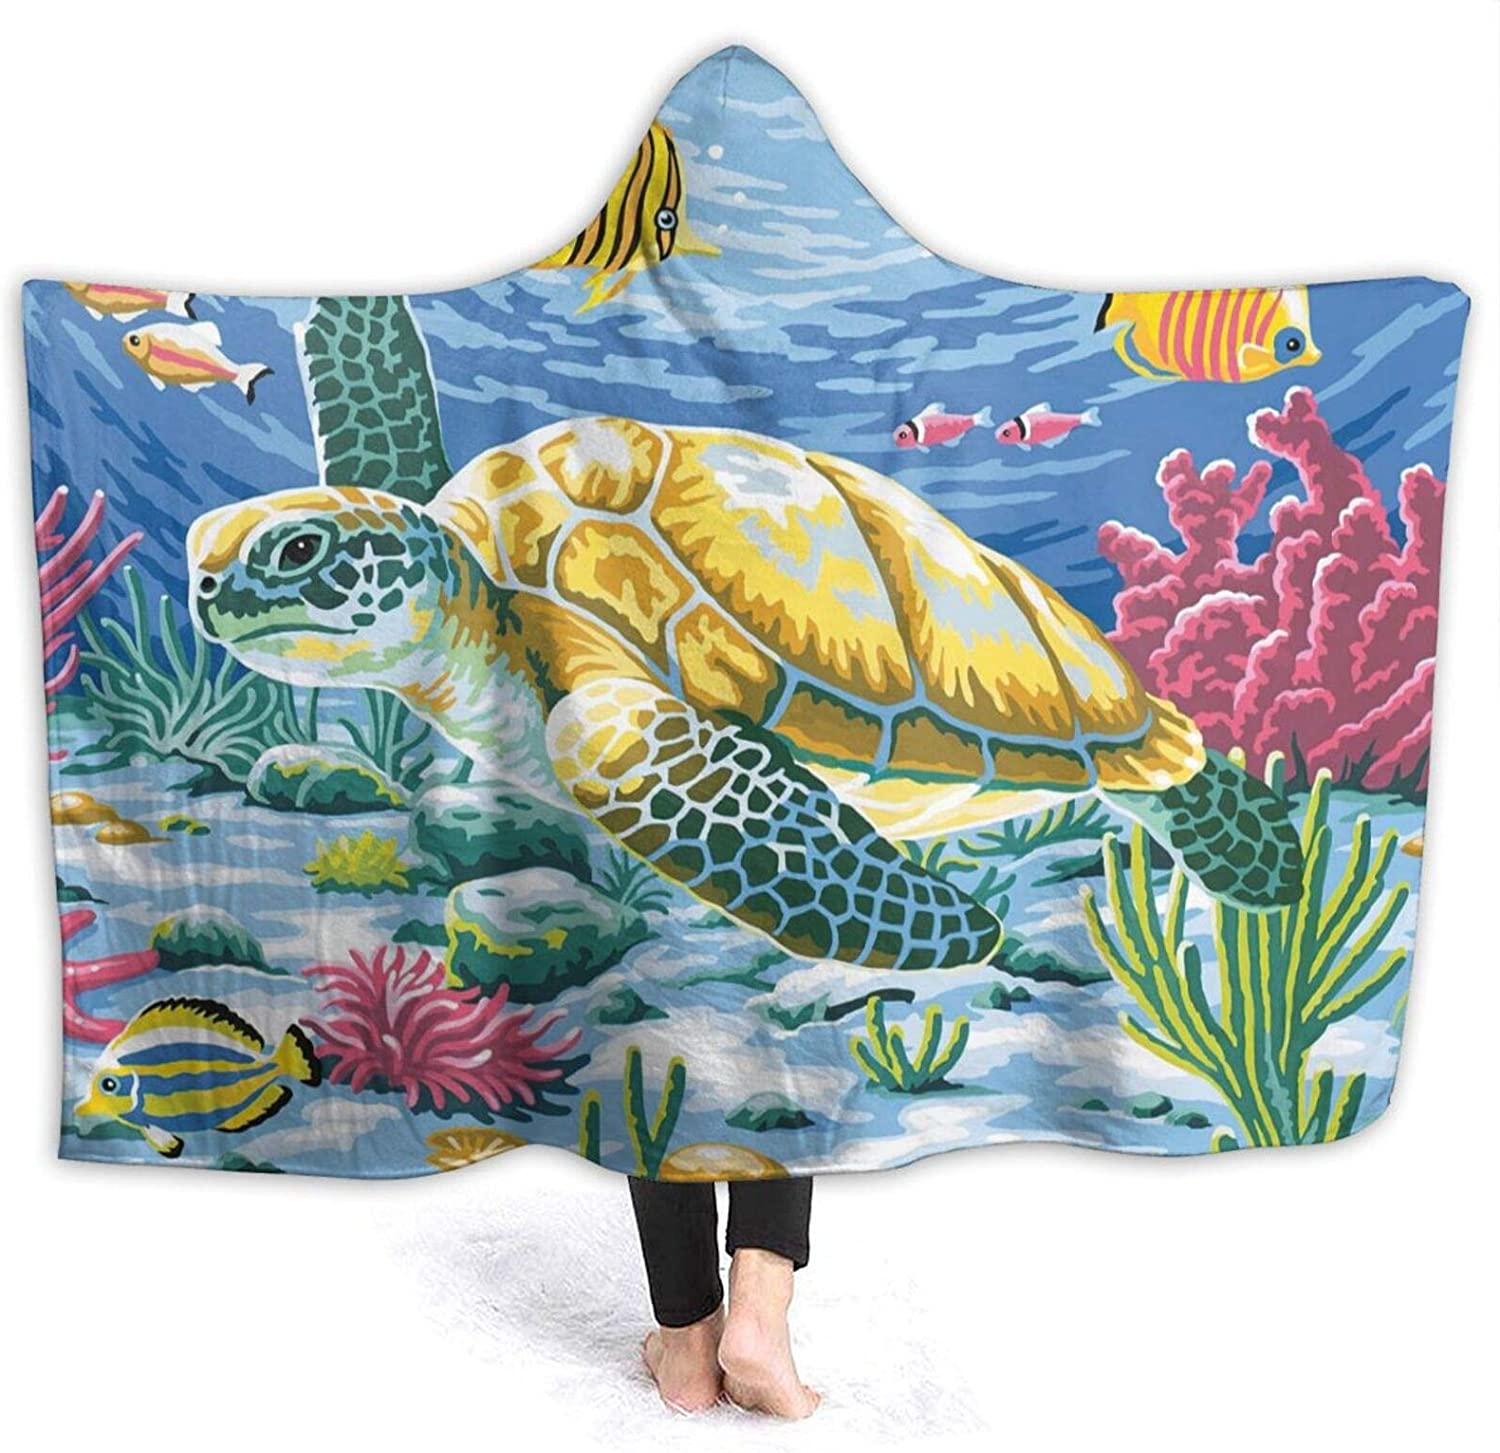 New products world's highest quality popular Sea Turtle and Fish Hooded We OFFer at cheap prices Air Blanket Conditioning Thro